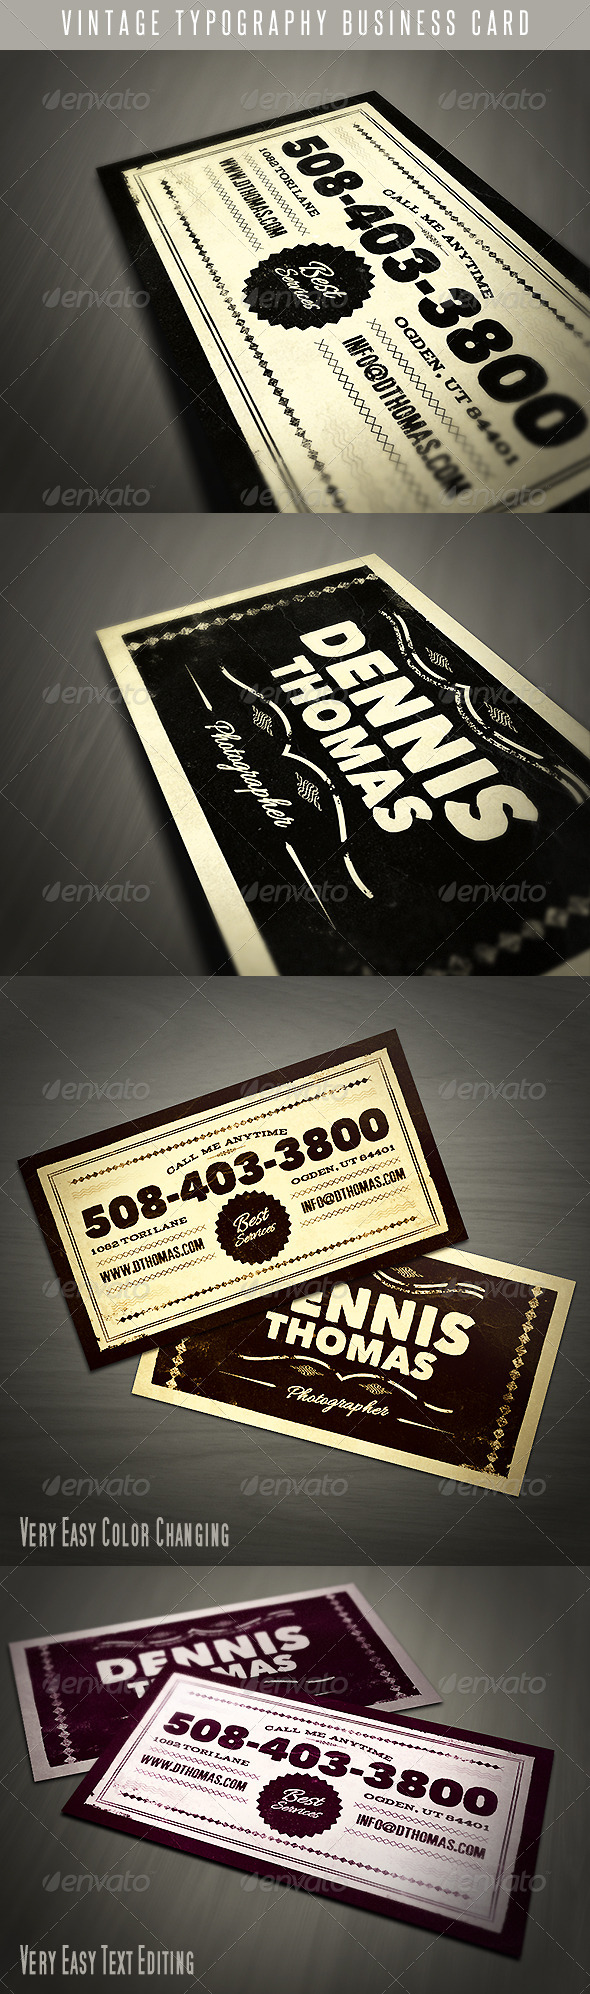 Vintage Typography Business Card - Retro/Vintage Business Cards